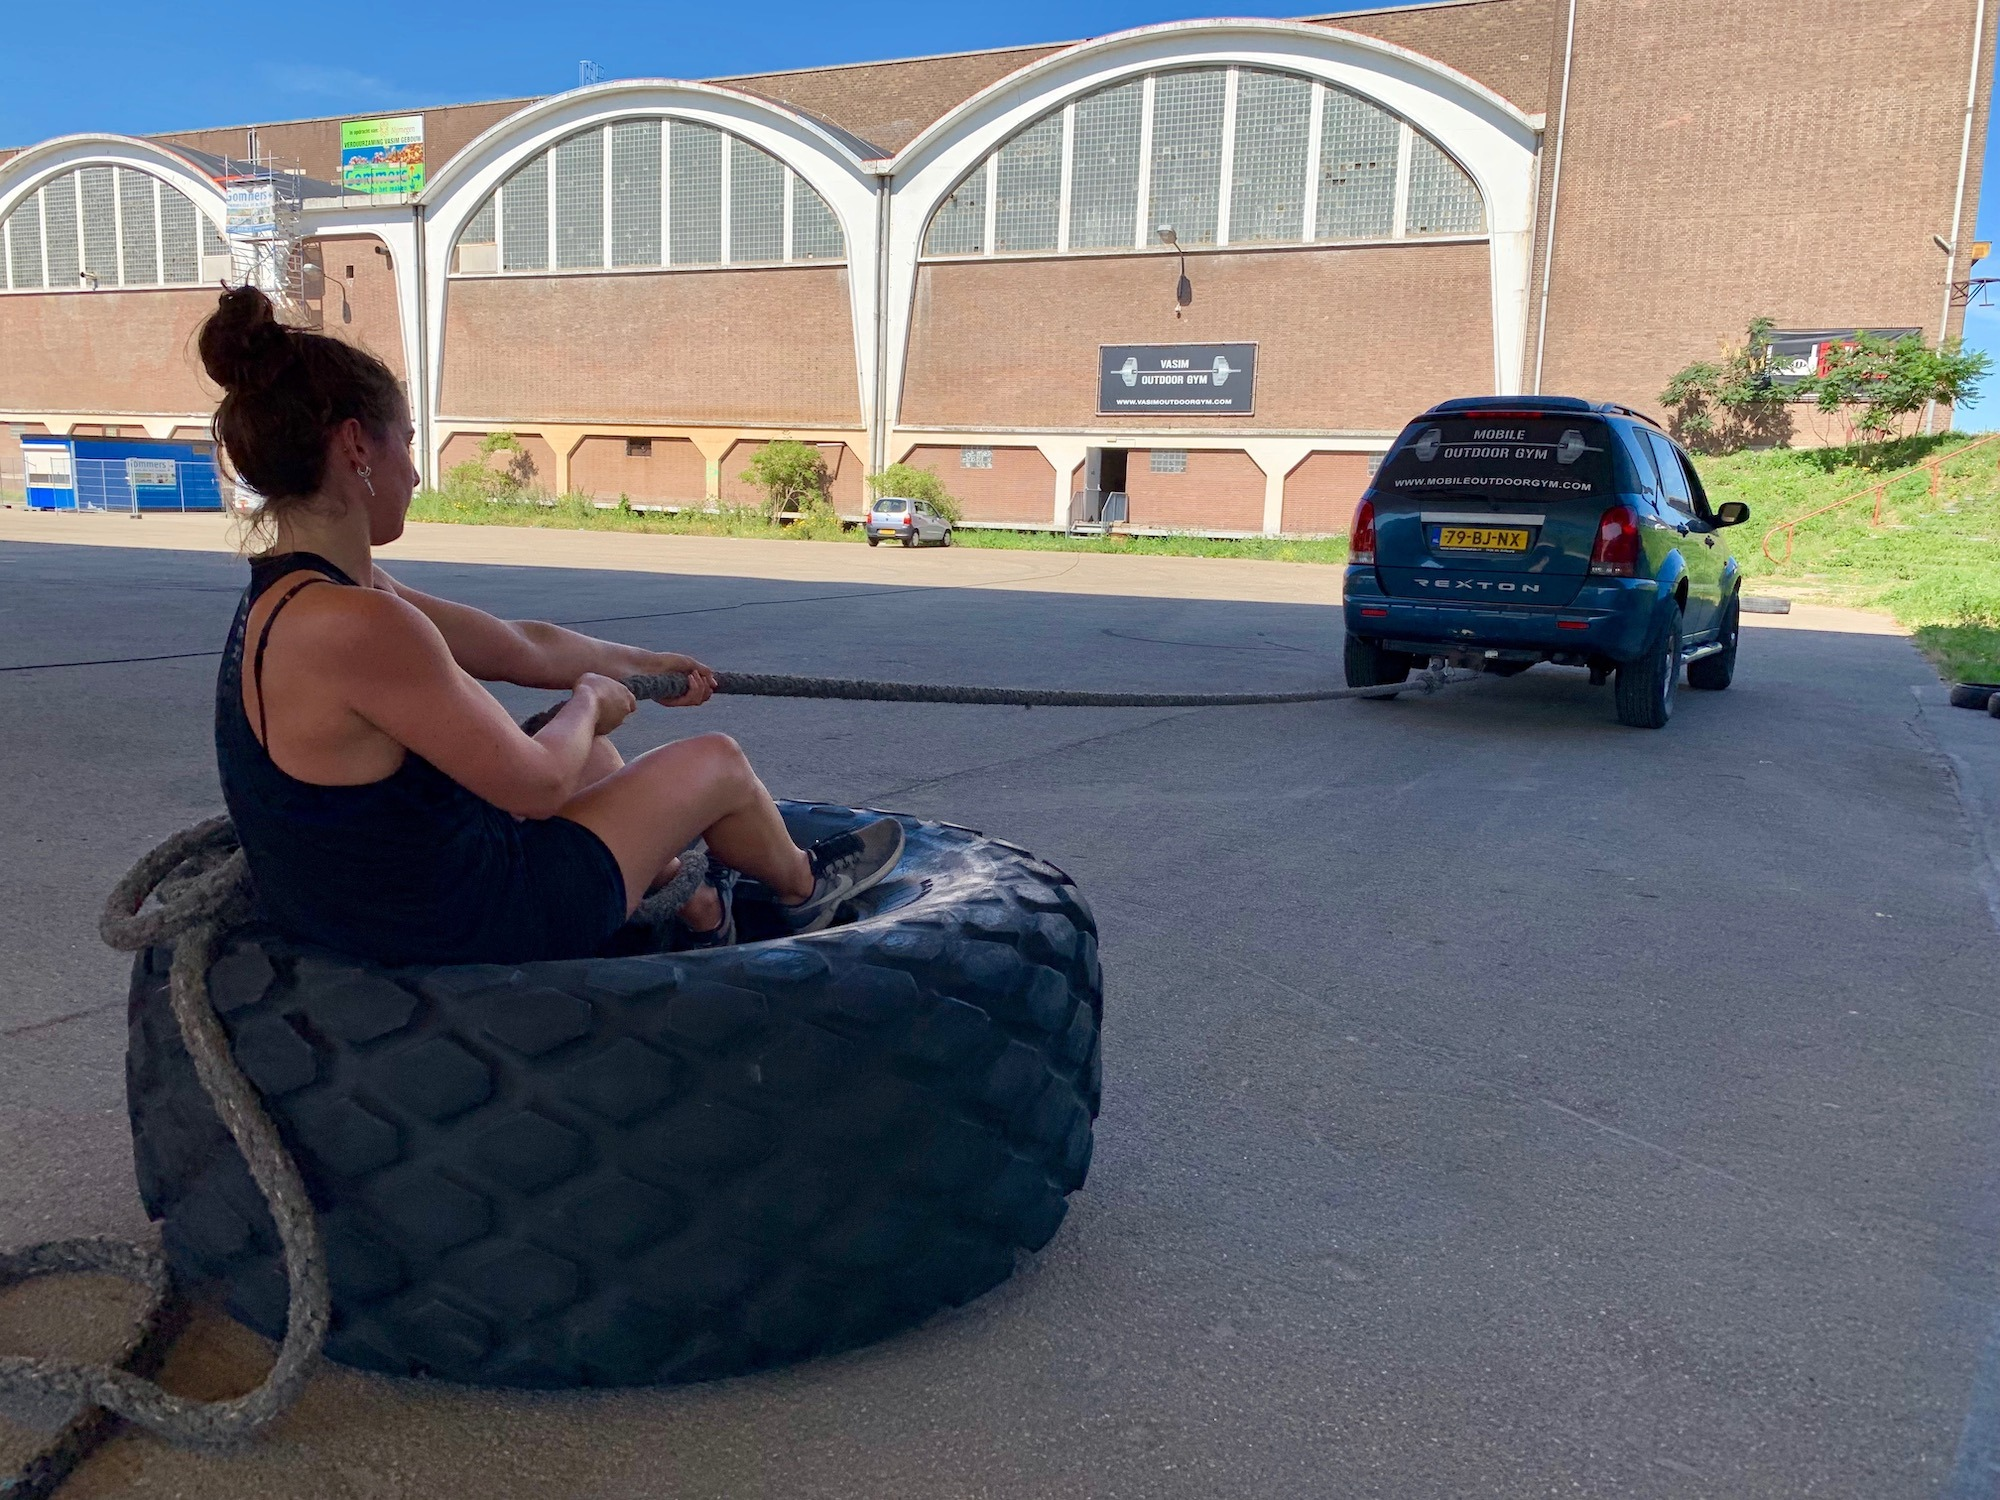 NYMA OUTDOOR GYM 23-07-2019